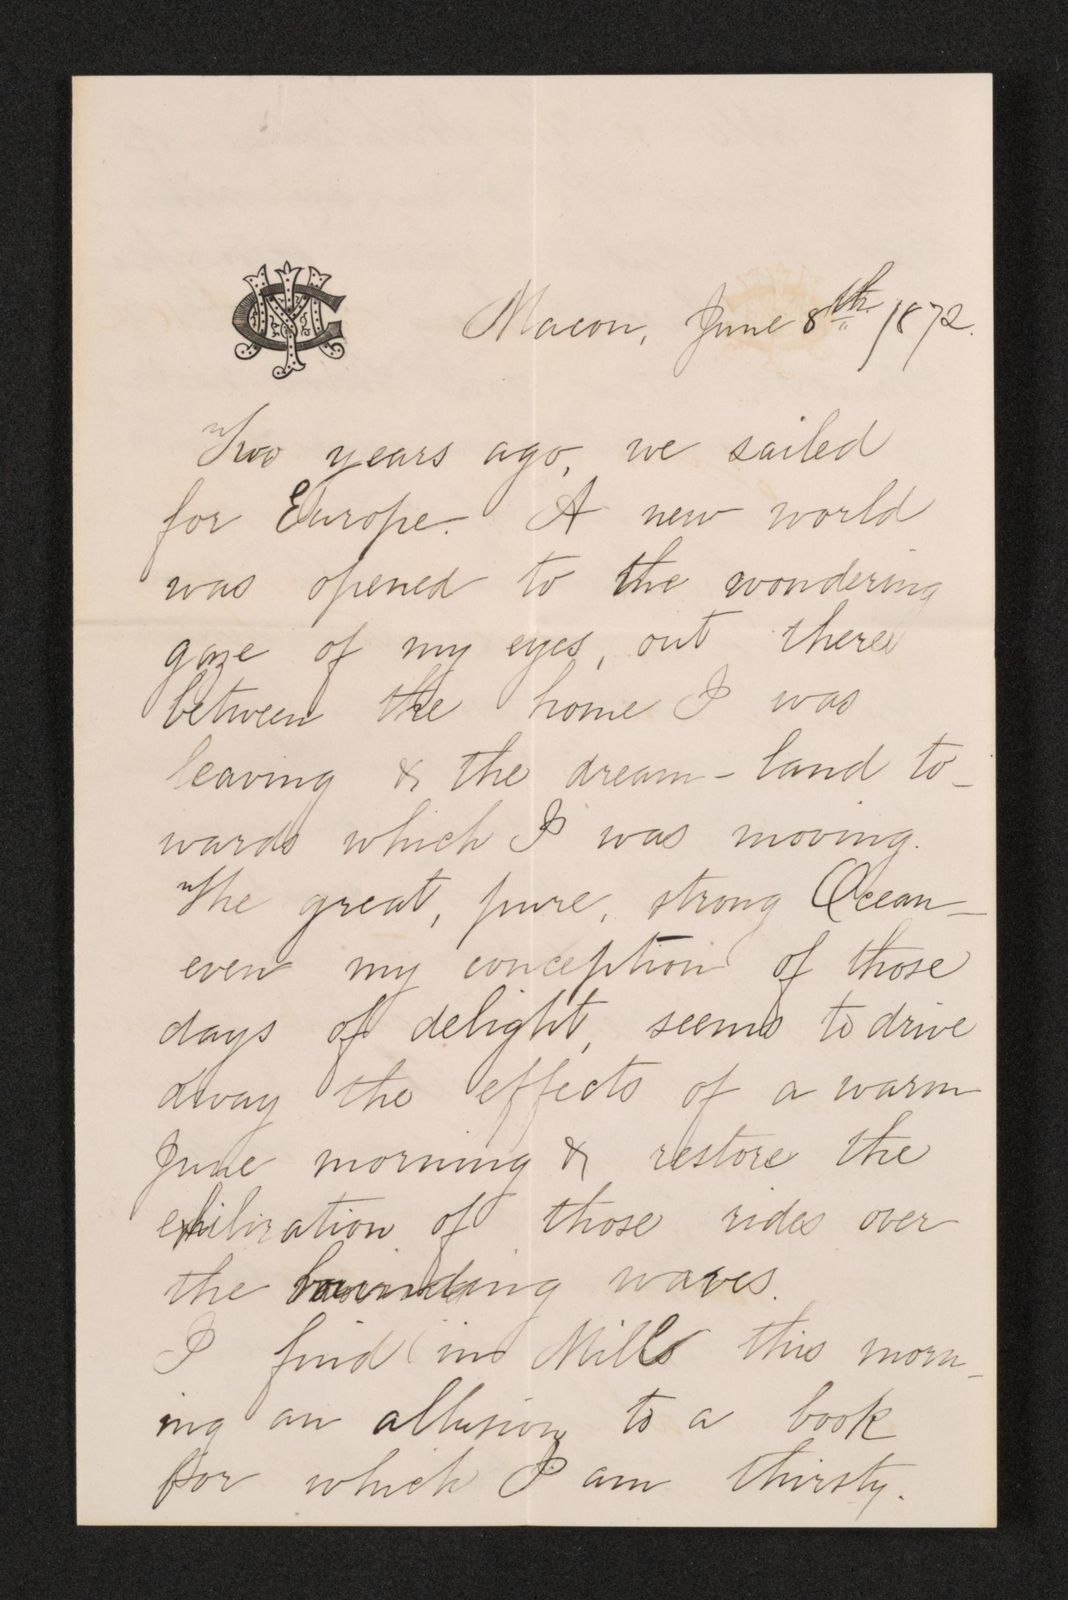 Lewis H. Machen Family Papers: Machen-Gresham Correspondence, 1871-1889; Gresham, Minnie, to Machen, Arthur W.; 1872